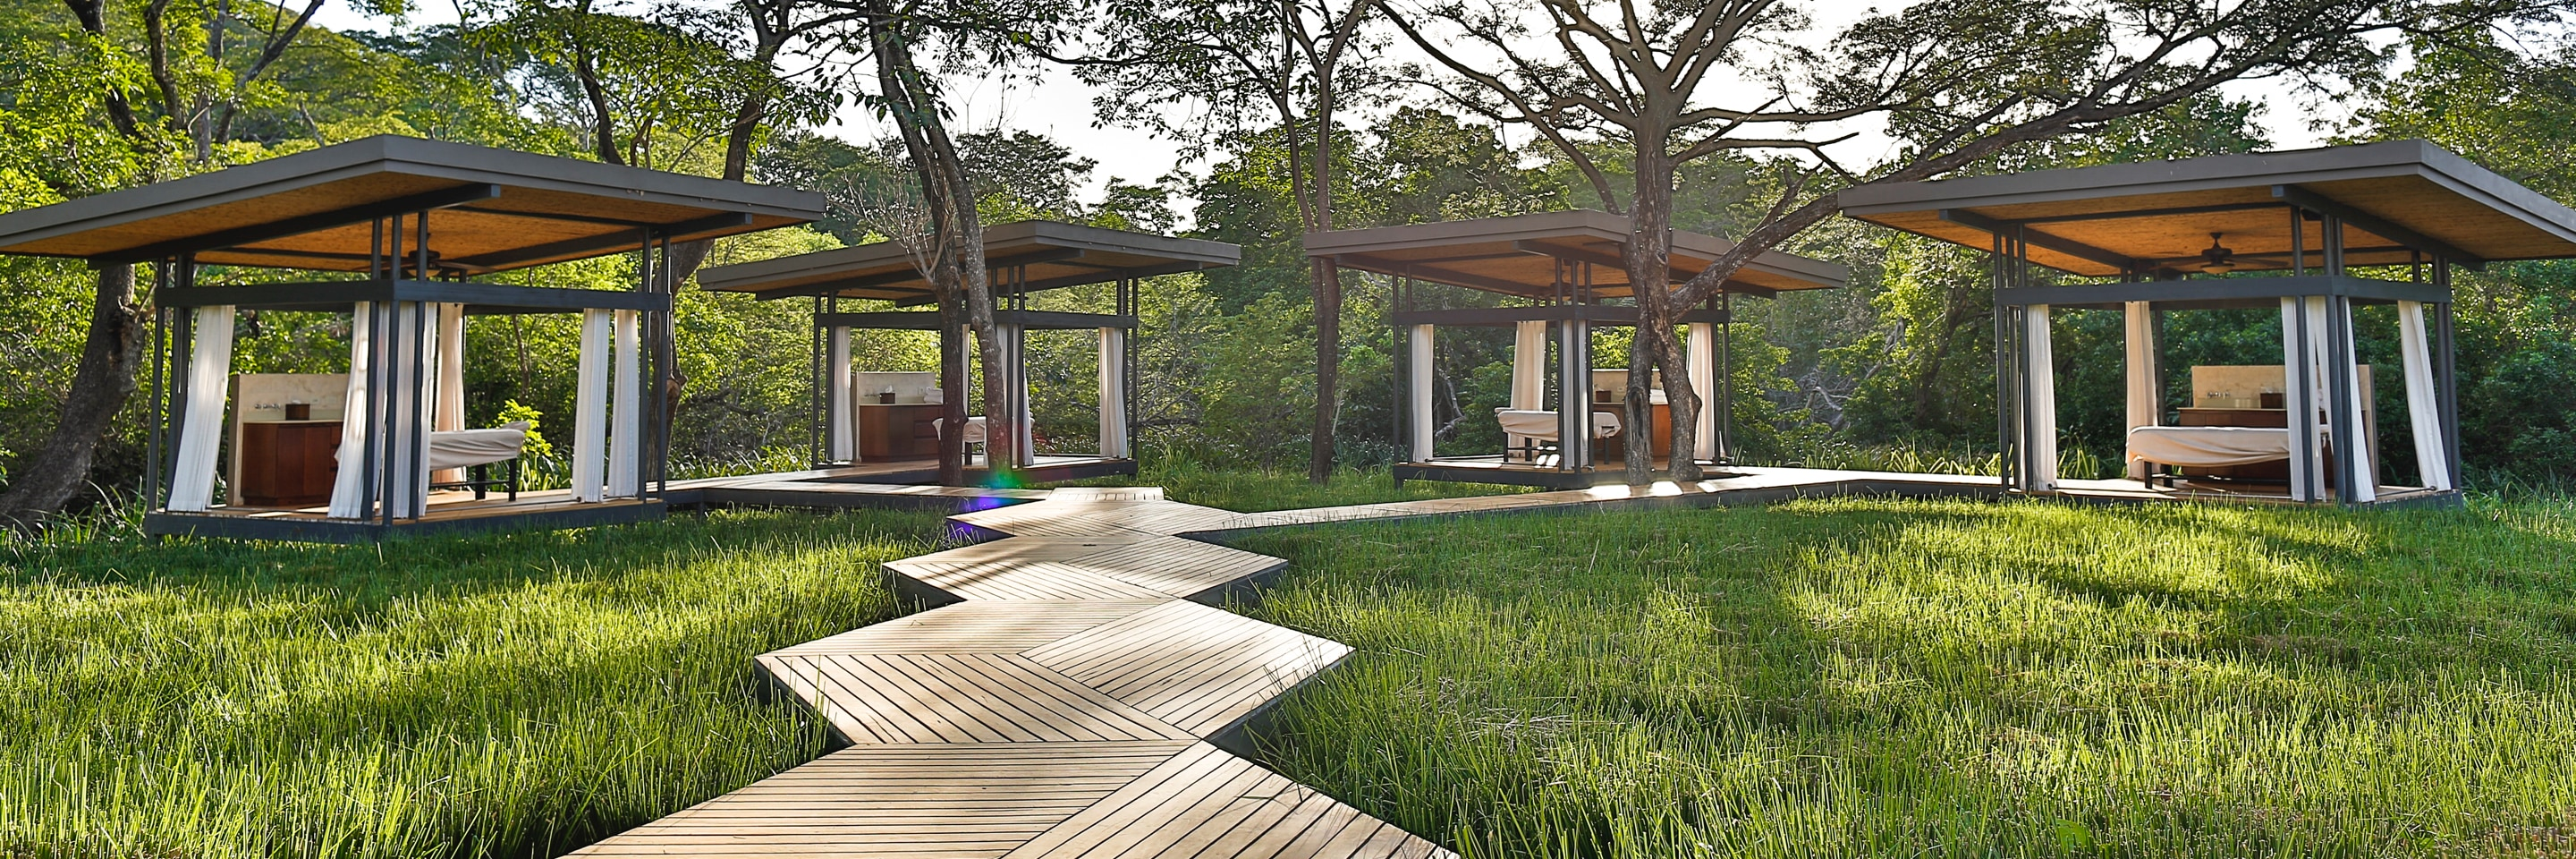 Spa cabanas at the edge of the forest